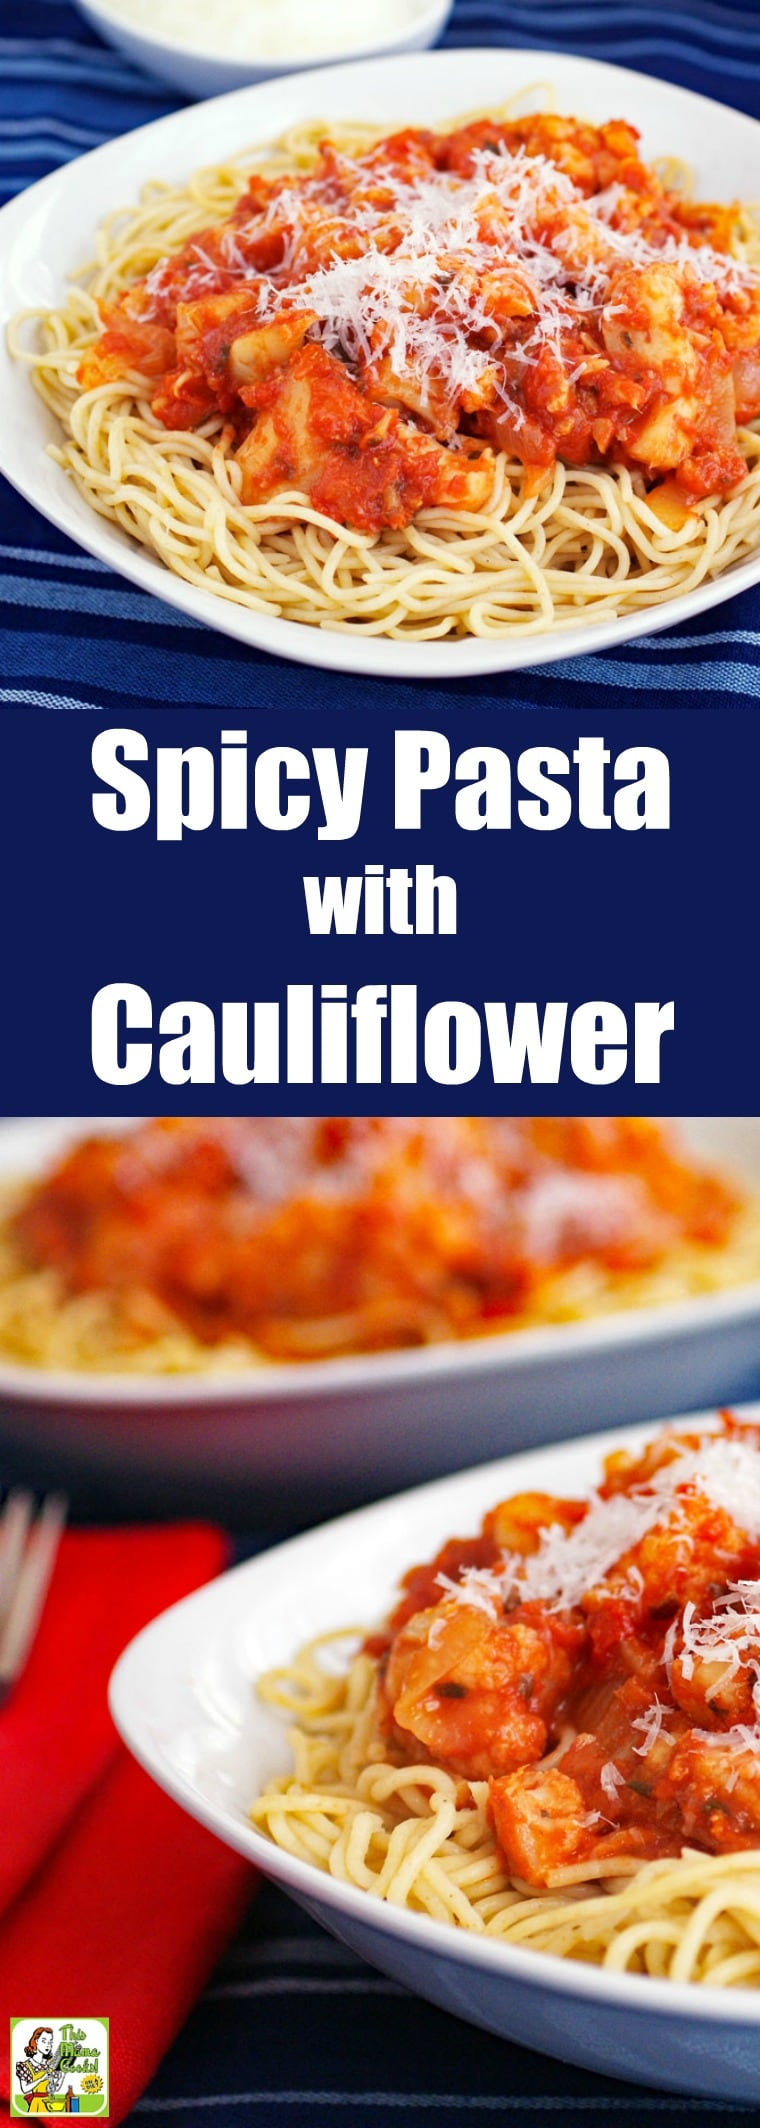 Spicy Pasta with Cauliflower